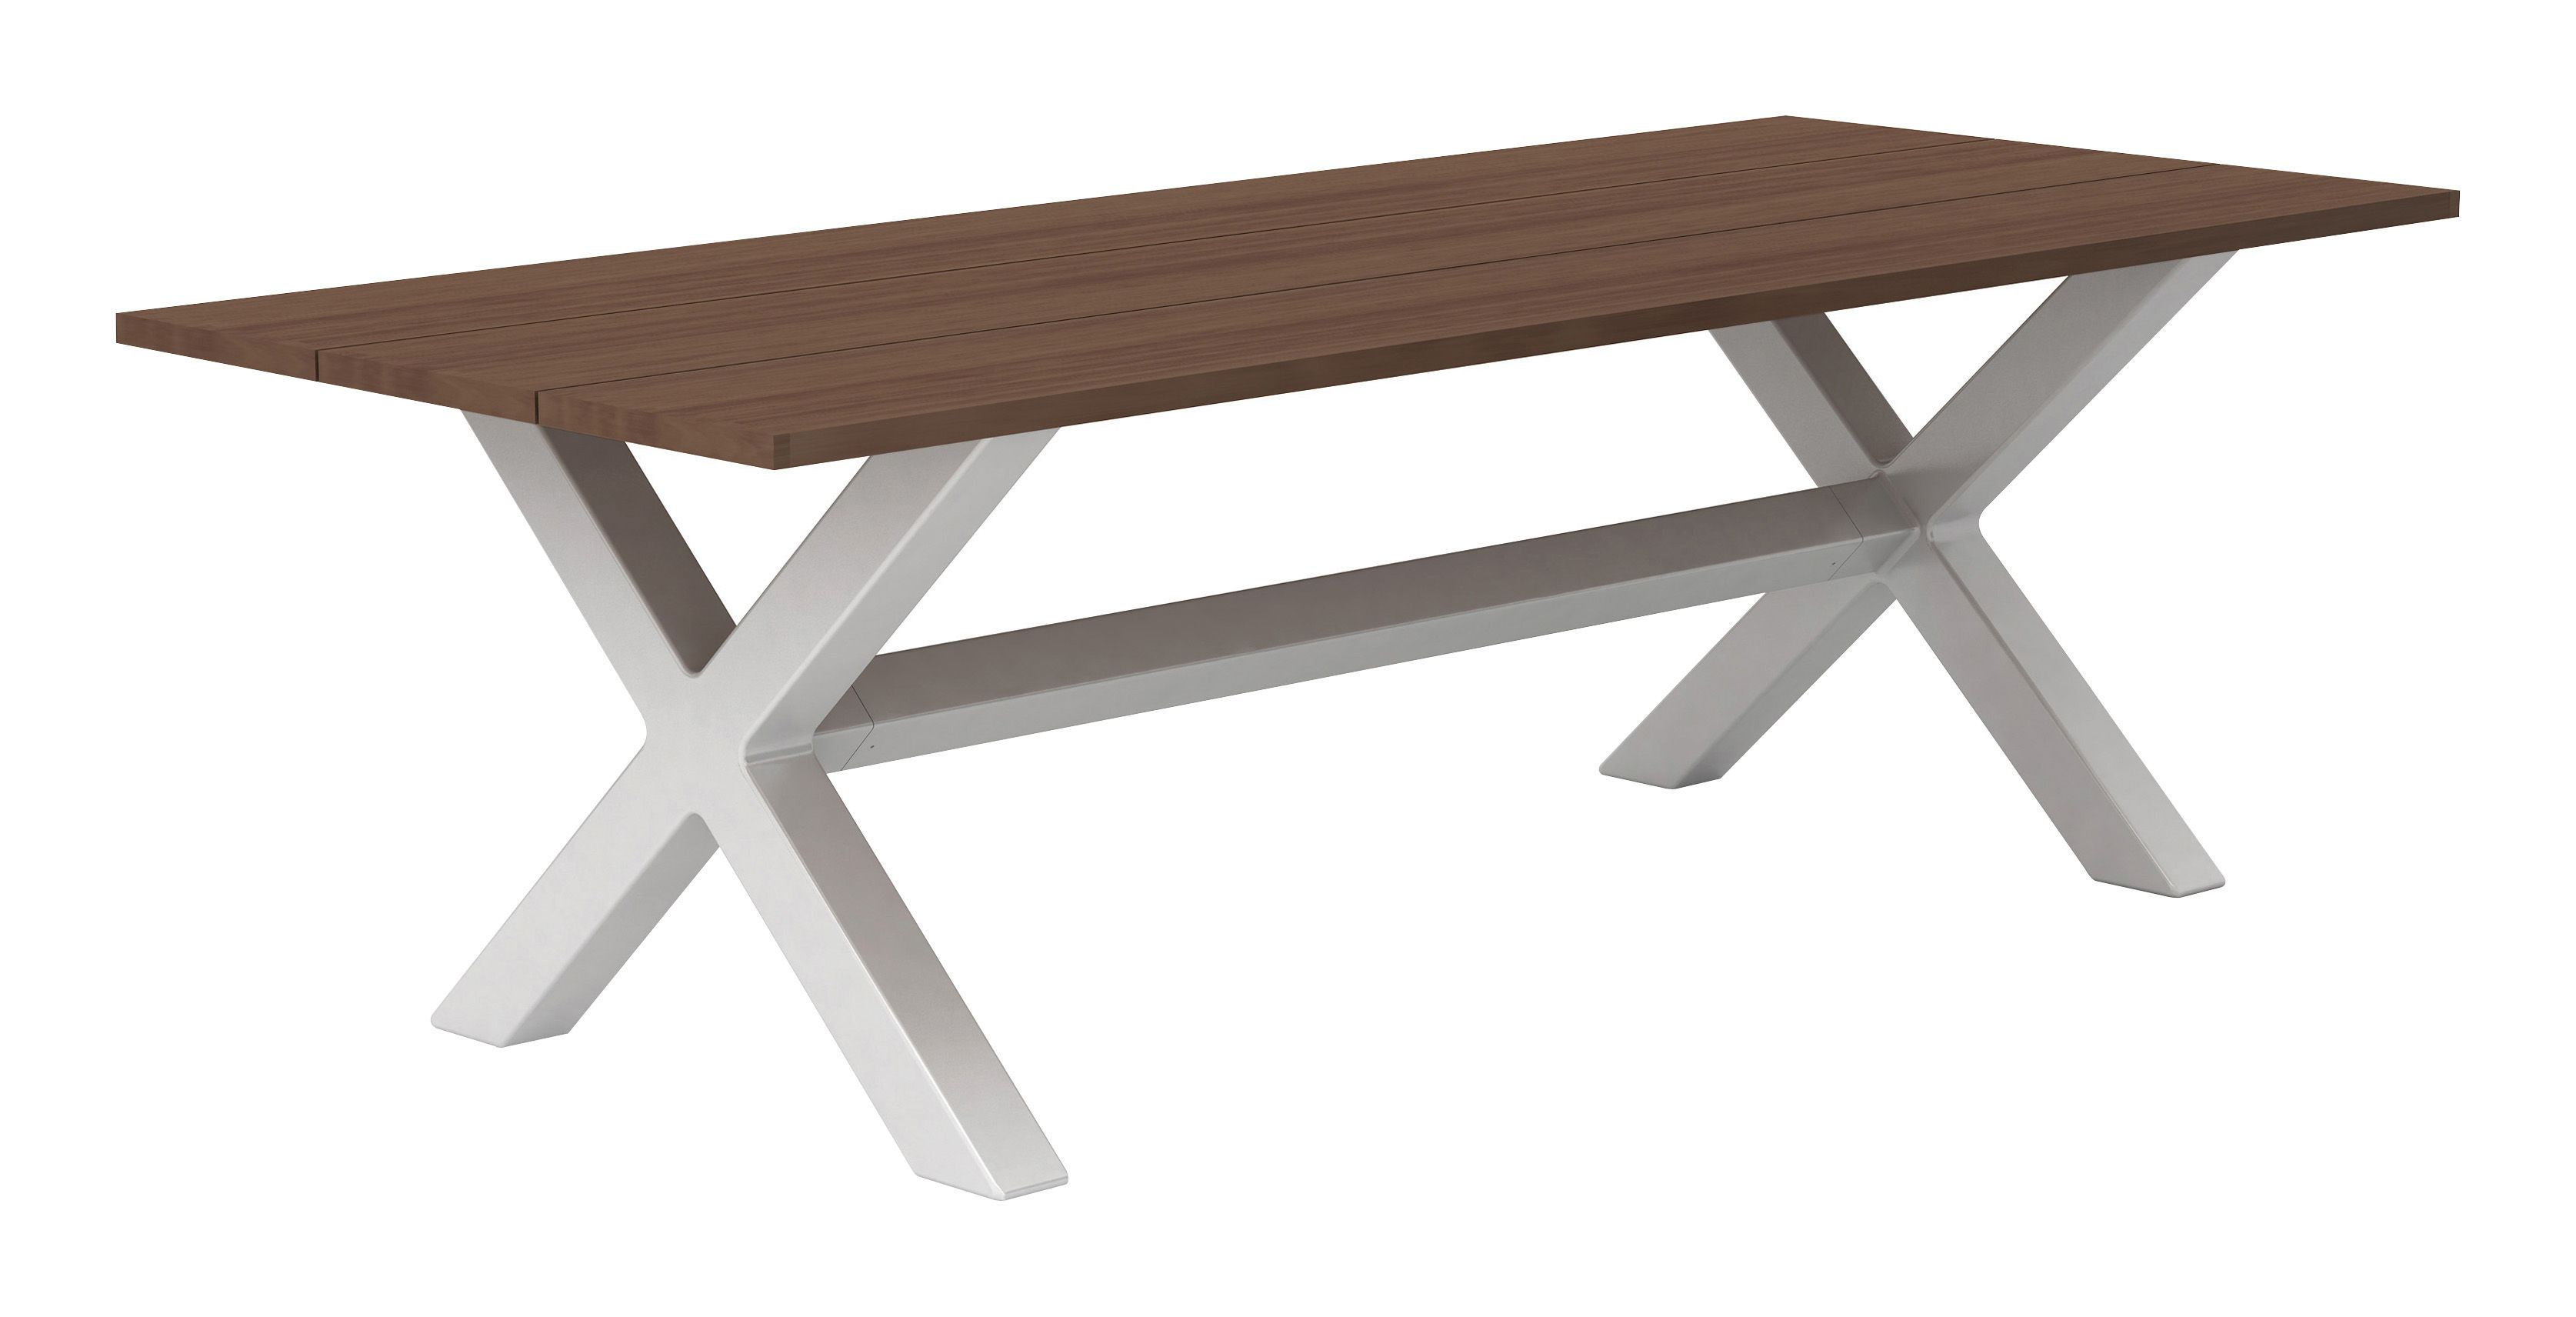 banqu t table 180 x 100 cm white structure wood top by serralunga. Black Bedroom Furniture Sets. Home Design Ideas